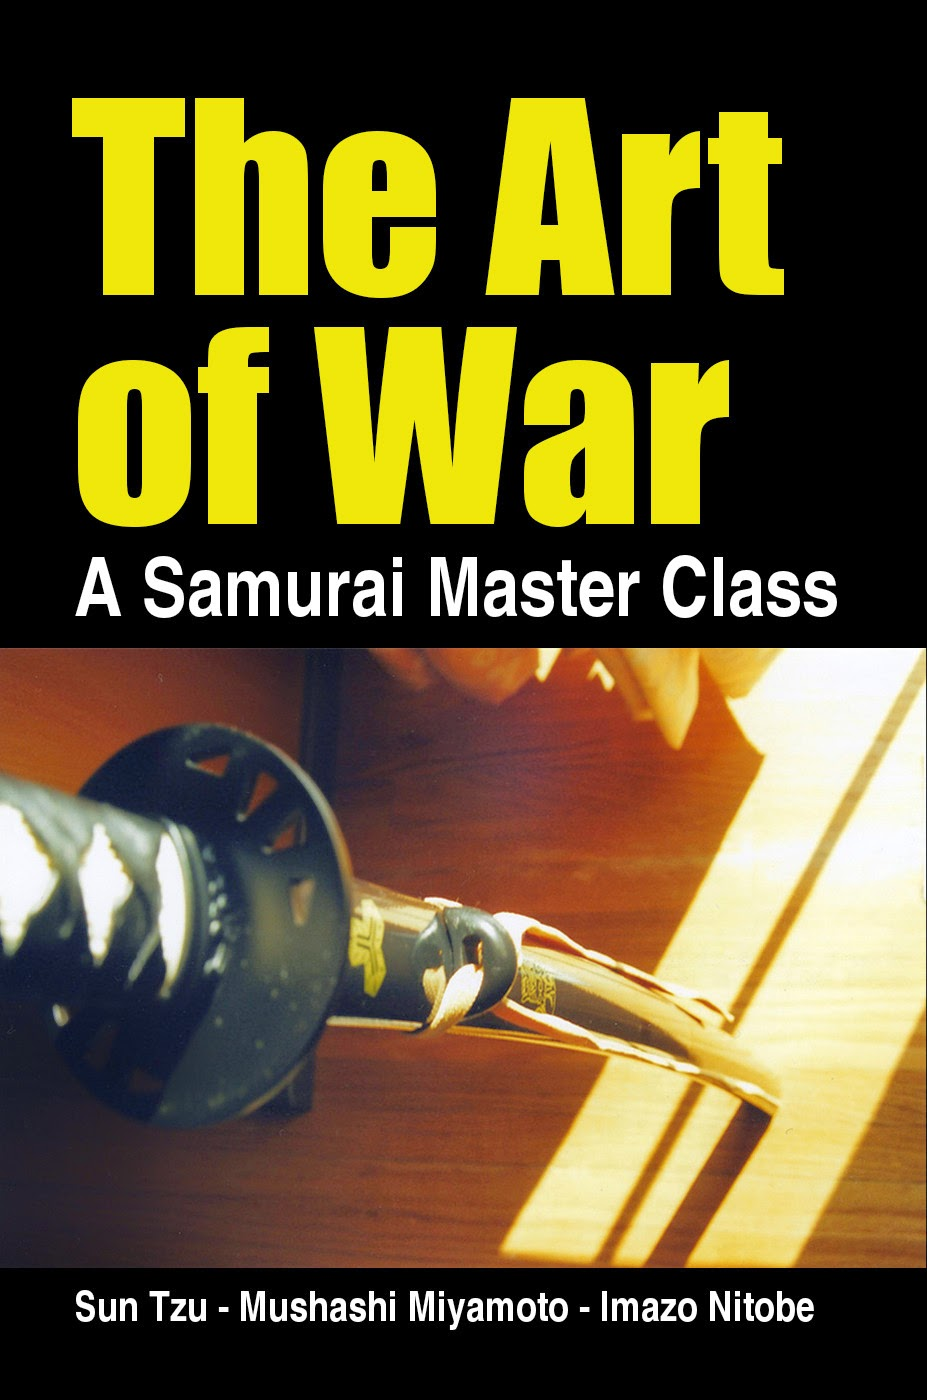 The Art of War, A Samurai Master Class - with Sun Tzu, Mushashi Miyamoto, and Imazo Nitobe